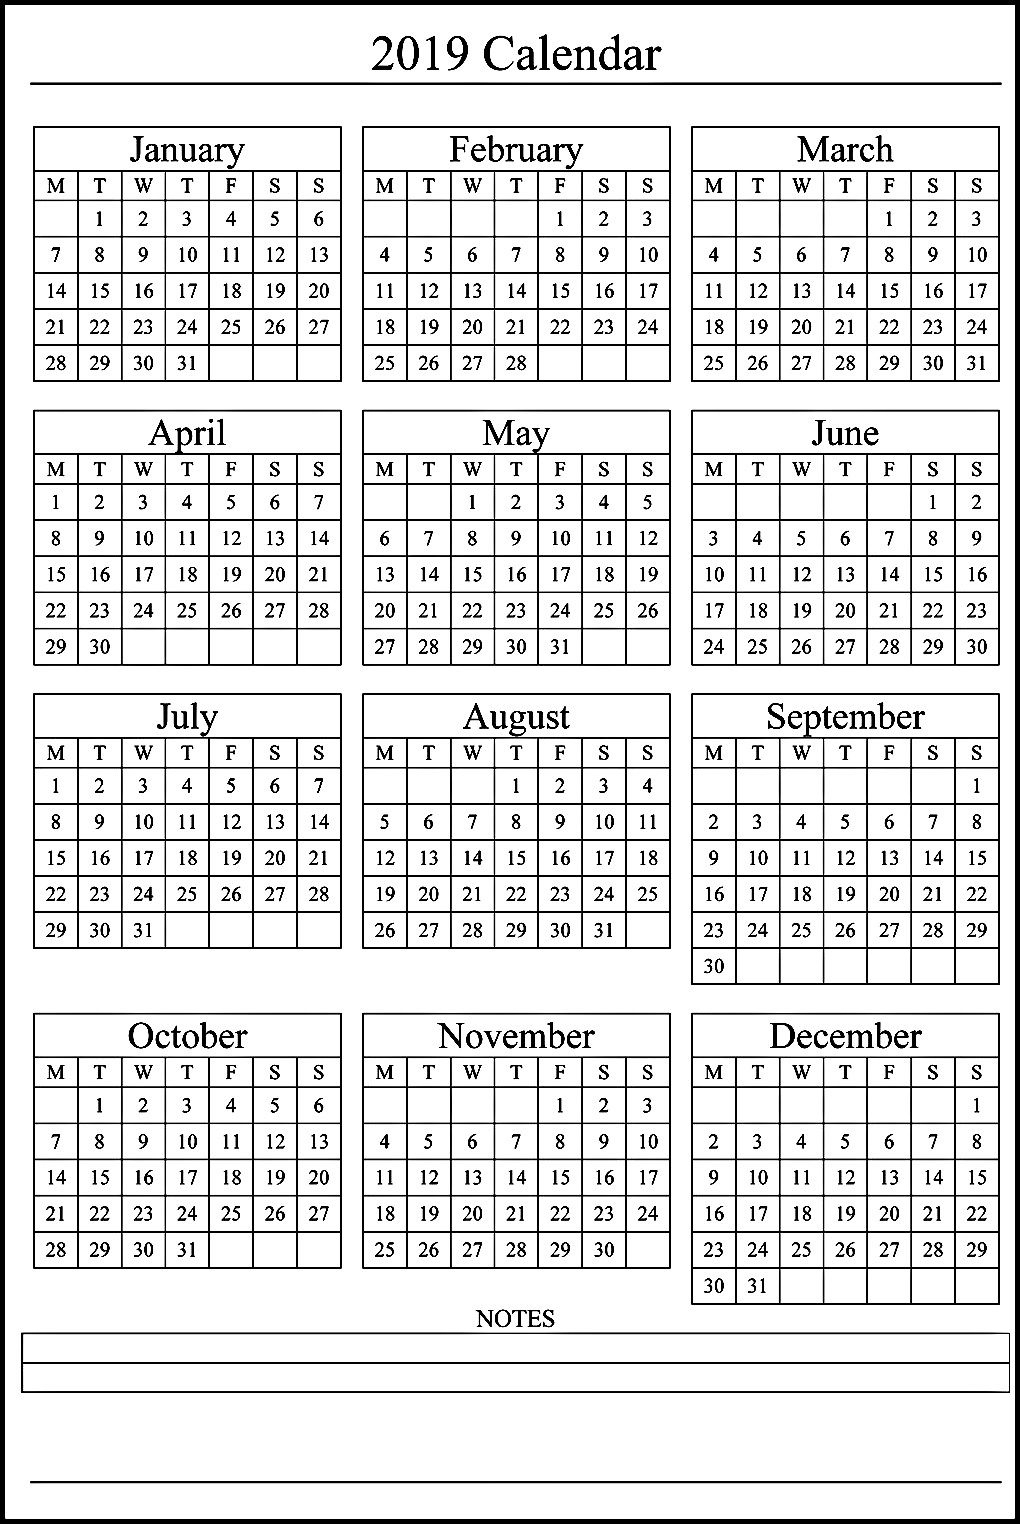 12 Month Calendar On One Page #2019Calendar Perky Calendar Template Months On One Page Word